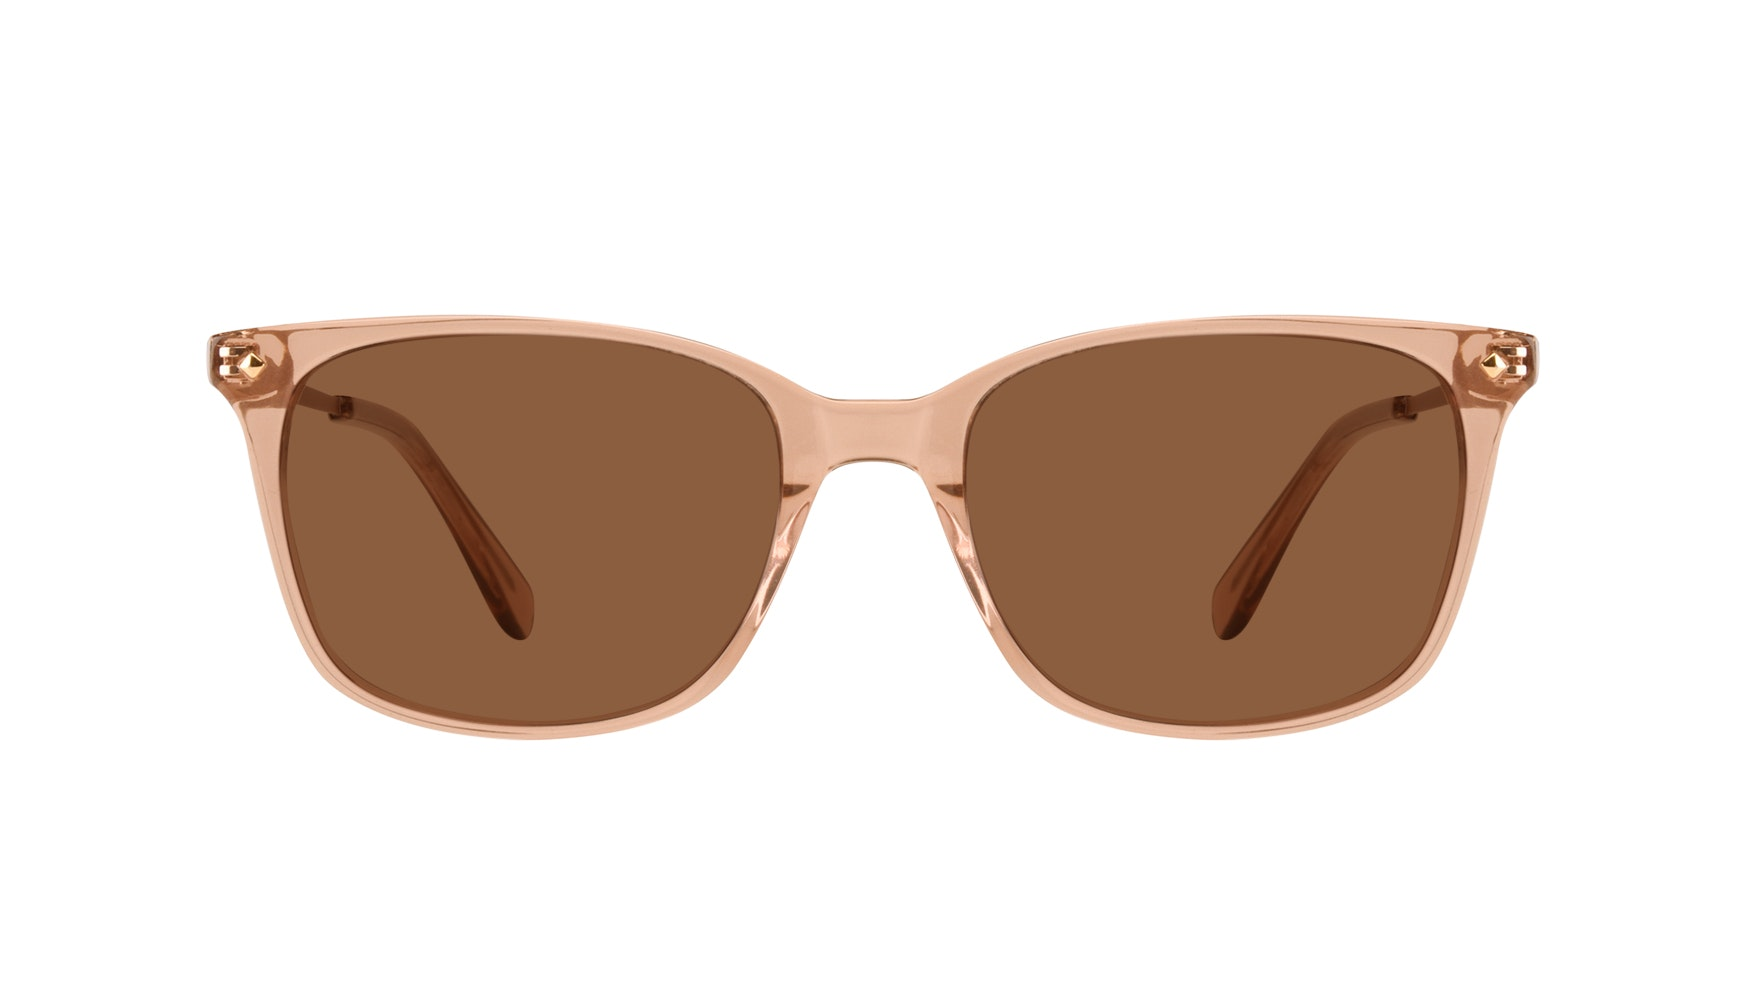 Affordable Fashion Glasses Rectangle Square Sunglasses Women Refine Toffee Front